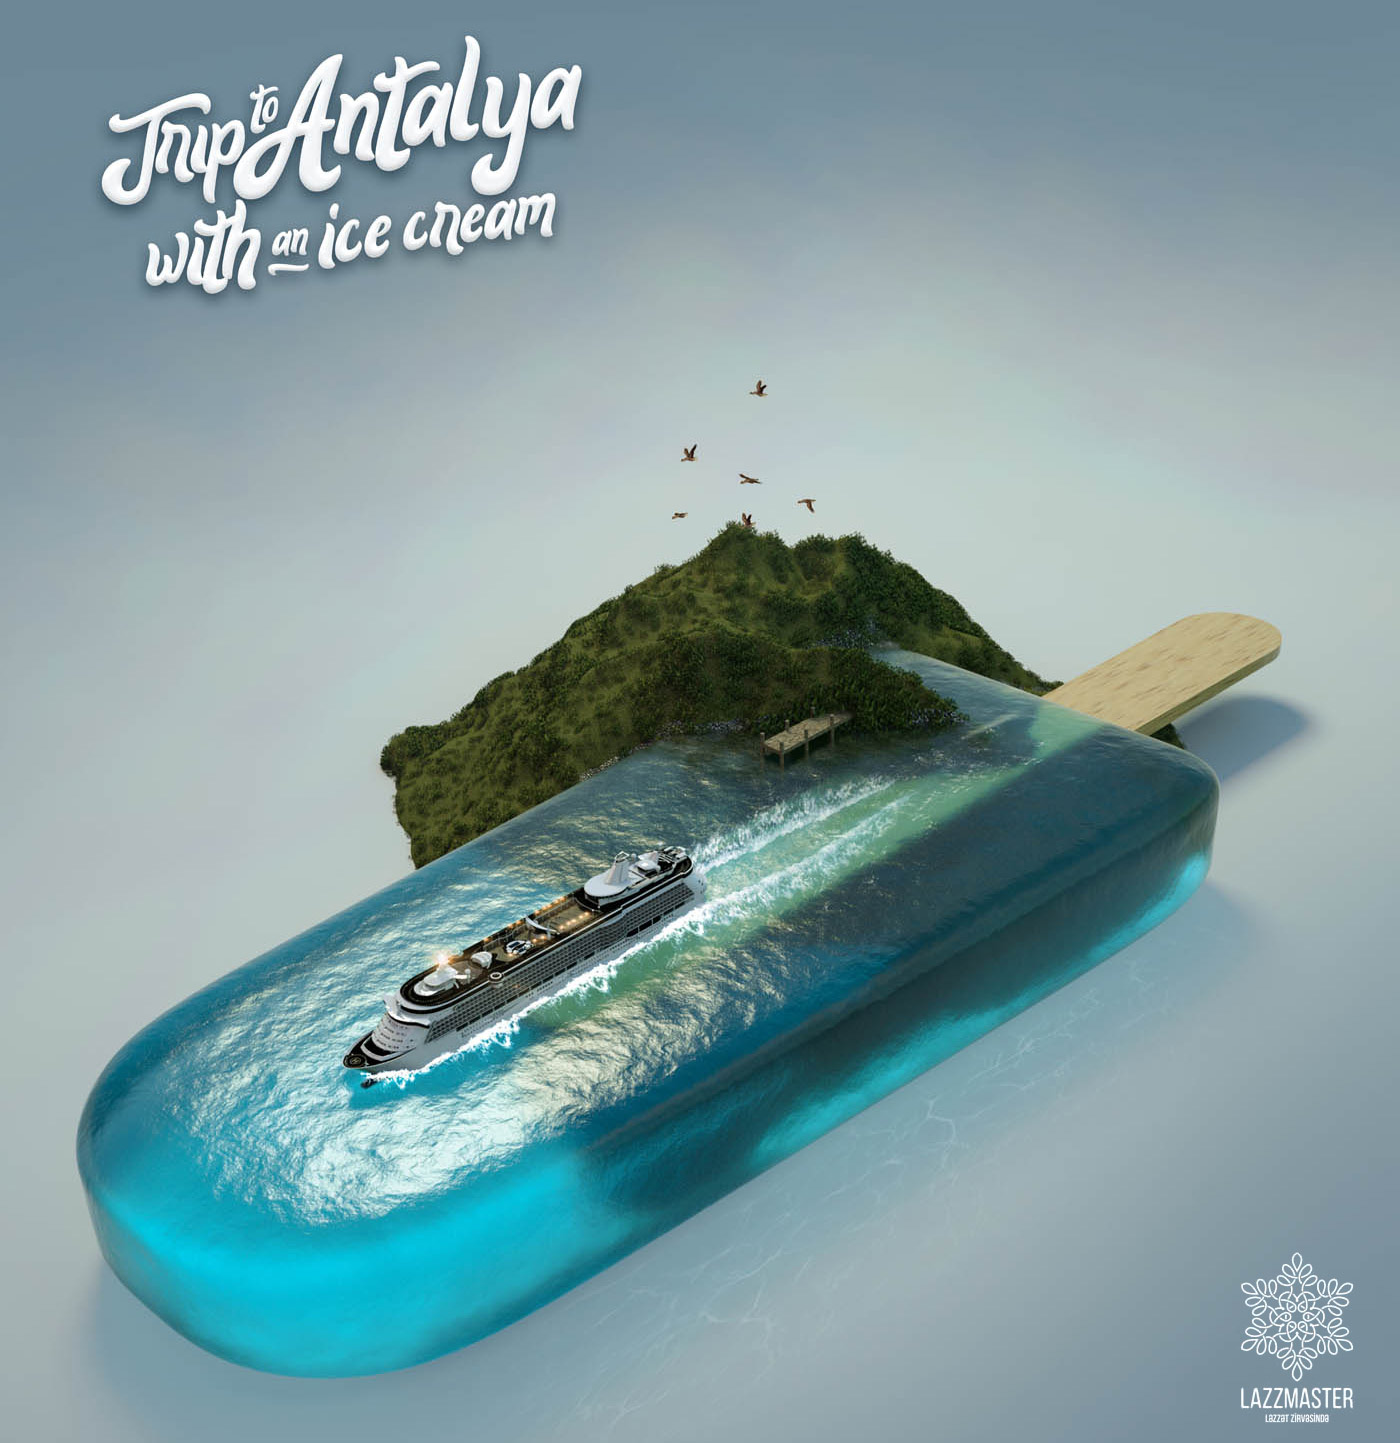 creative advertisment design tour antalya by lazzmaster